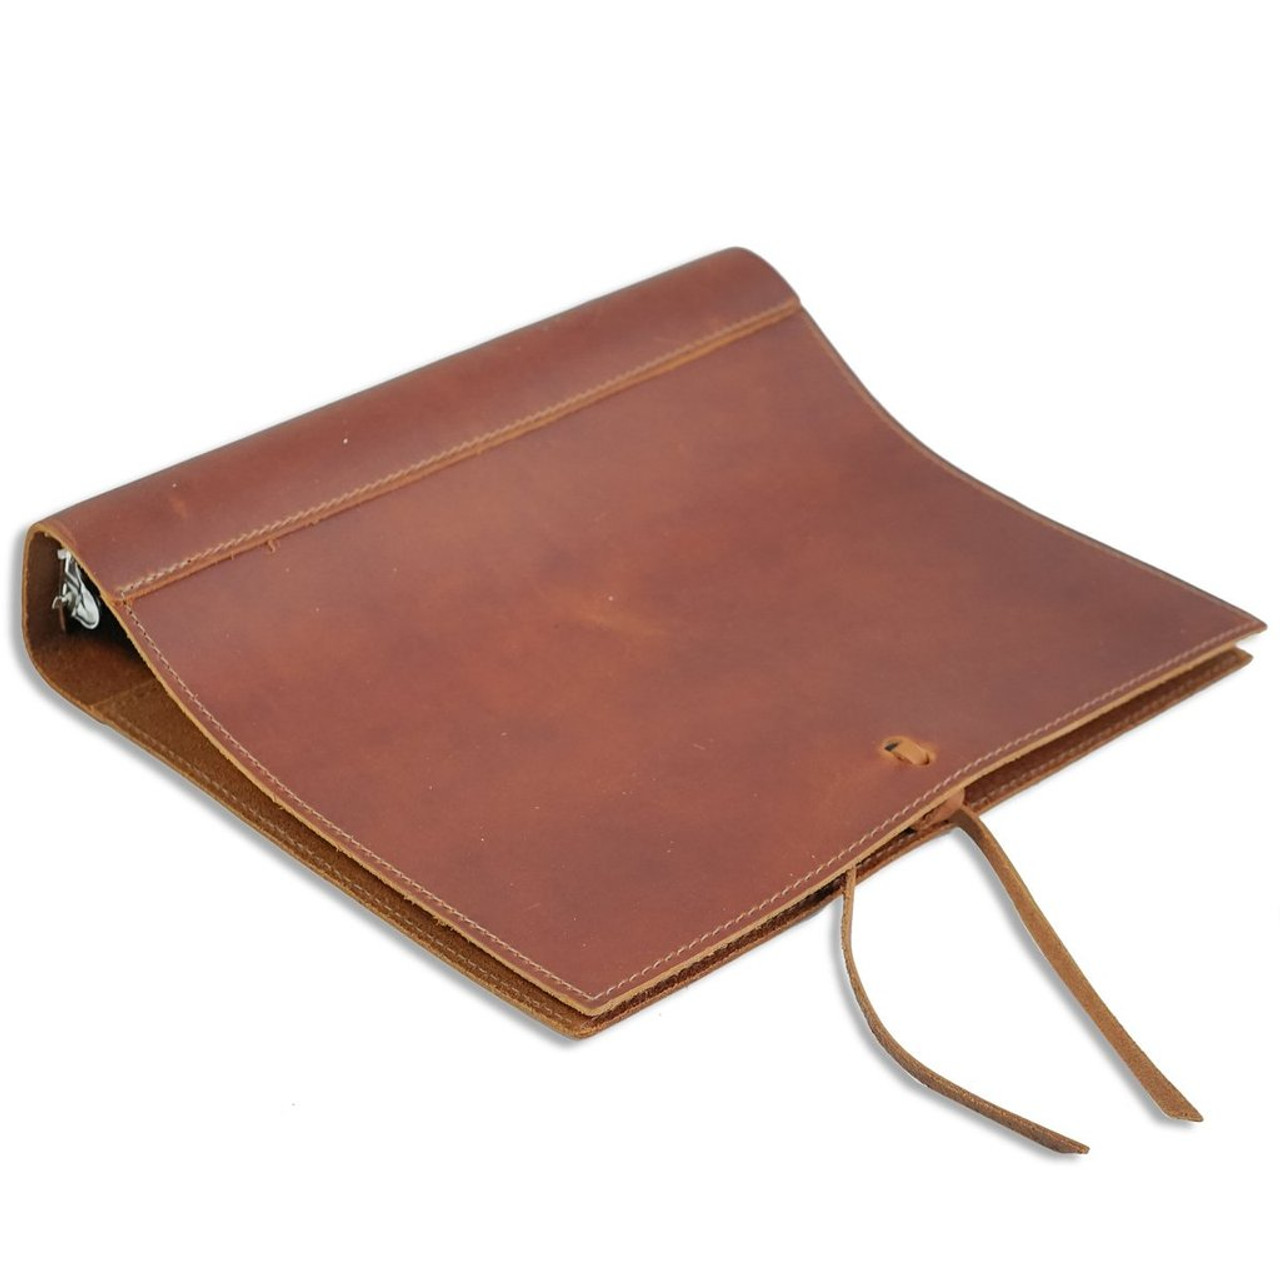 "Rustico Soft Leather Binder with 1.5"" Rings 8"" x 11"" - Side View"